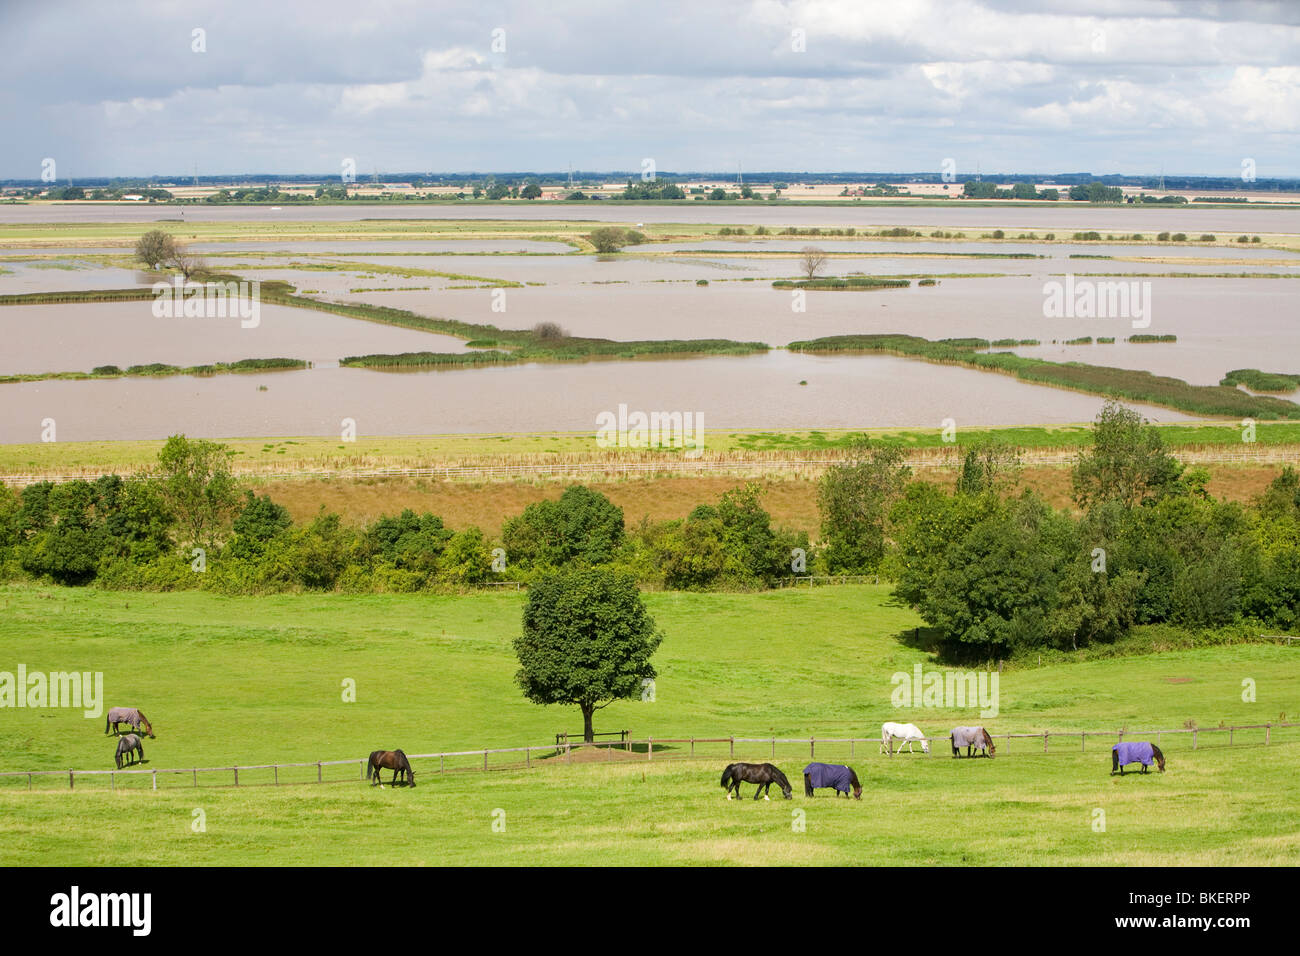 Managed retreat, Breach at Alkborough on the Humber Estuary in Eastern England - Stock Image